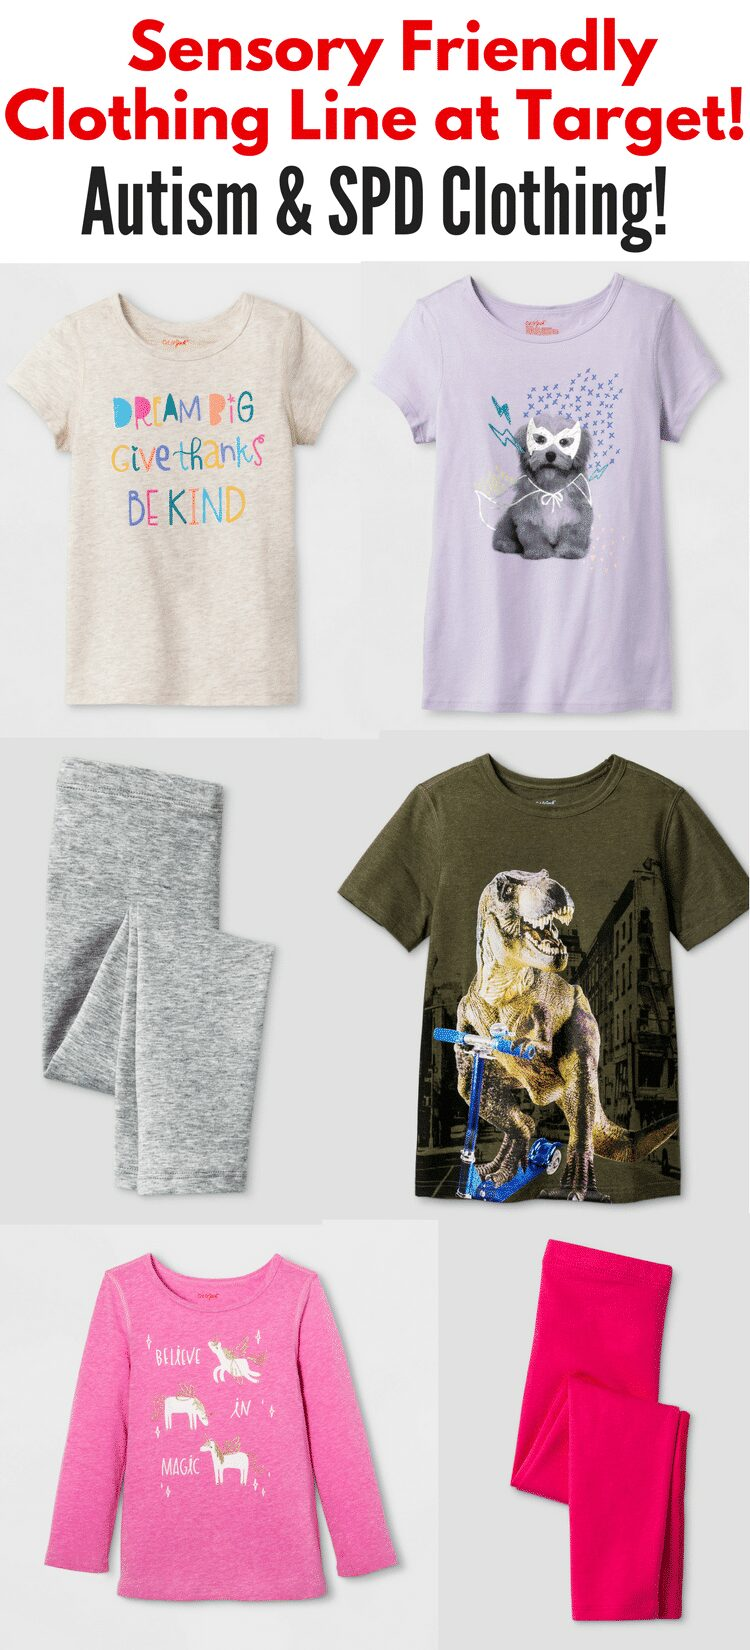 Sensory Friendly Clothing Line at Target! Autism & SPD Clothing!